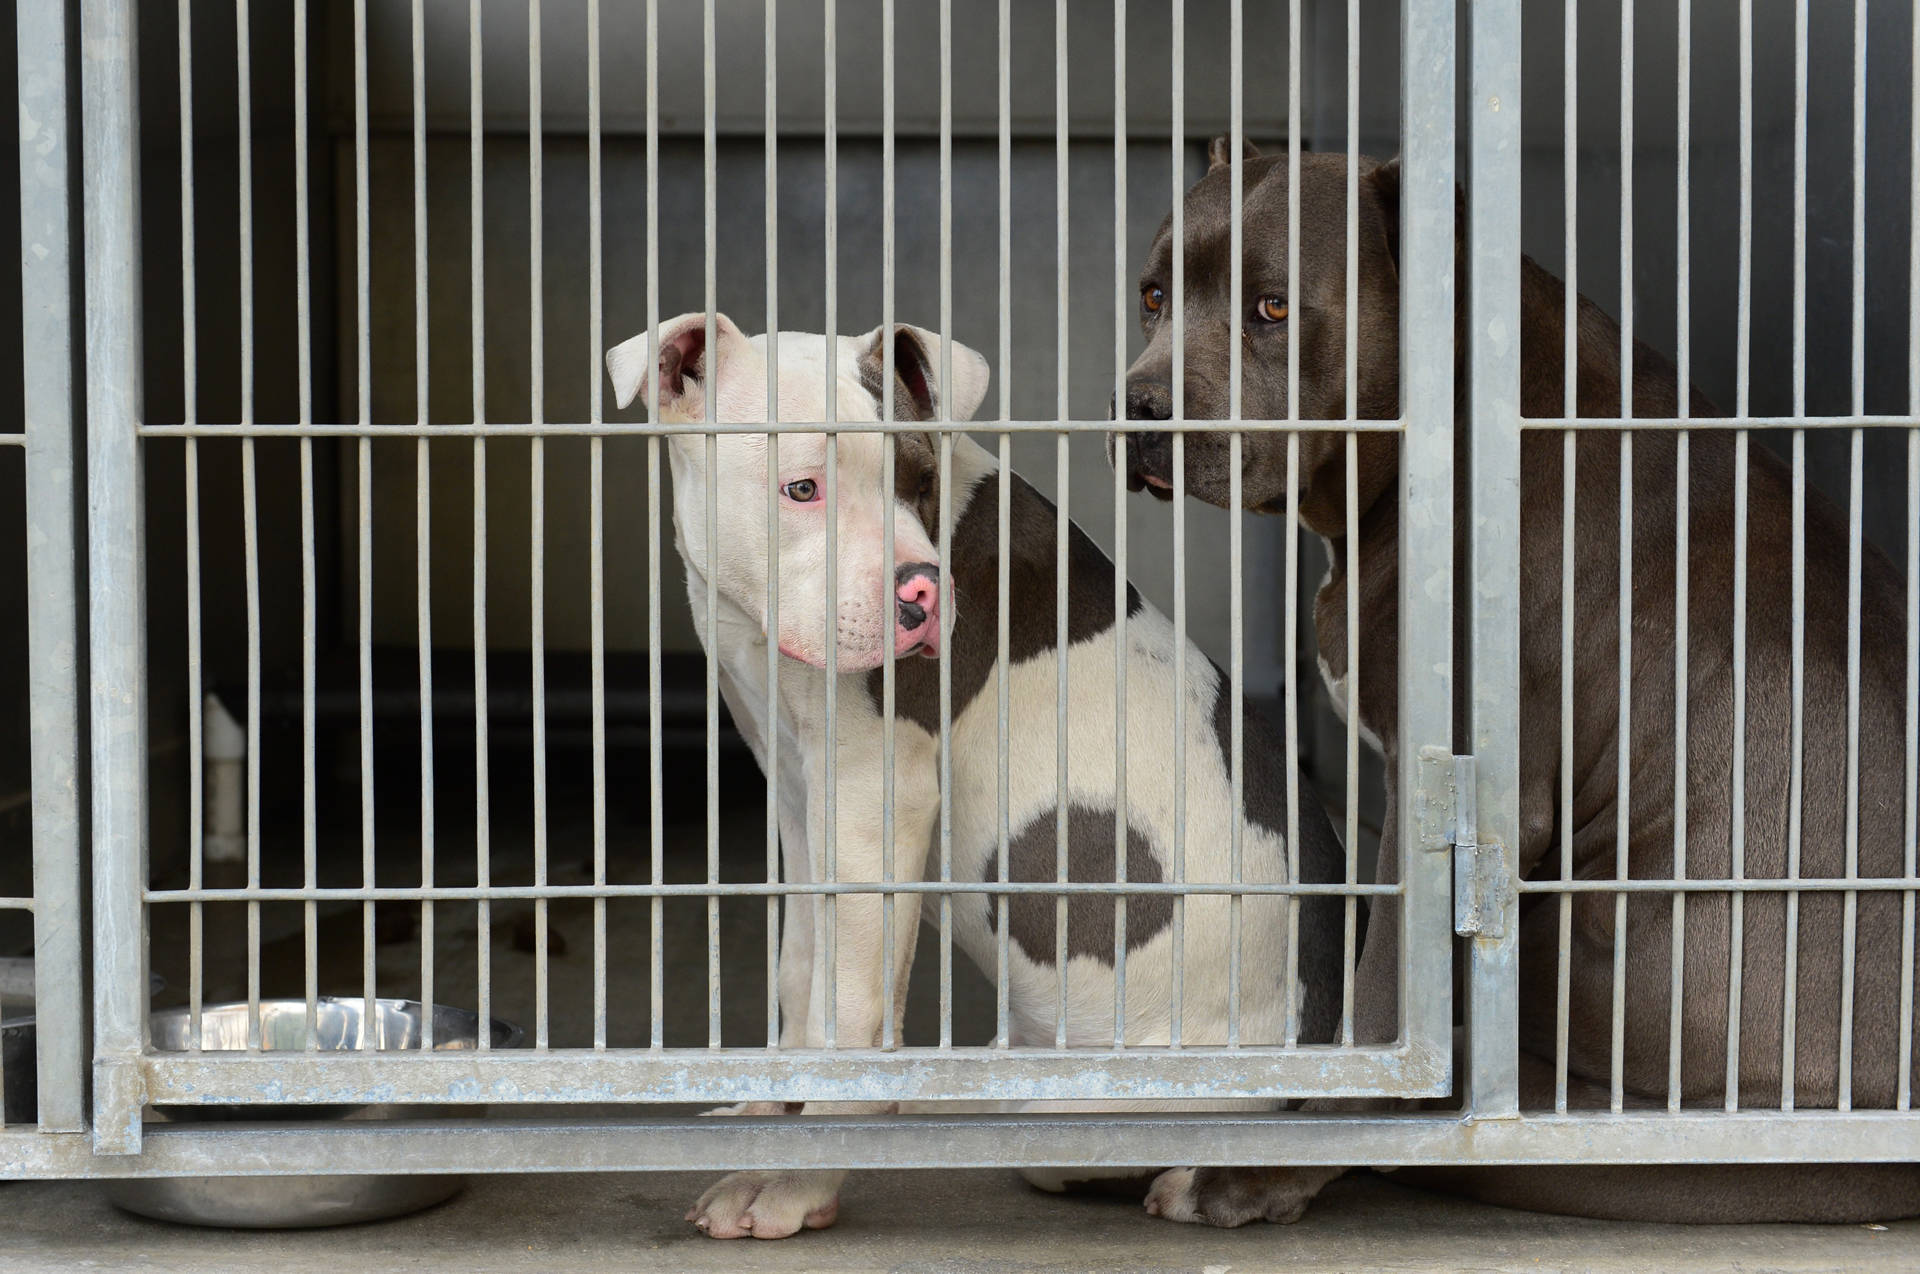 New California Law Gives 'Vicious' Dogs a Second Chance